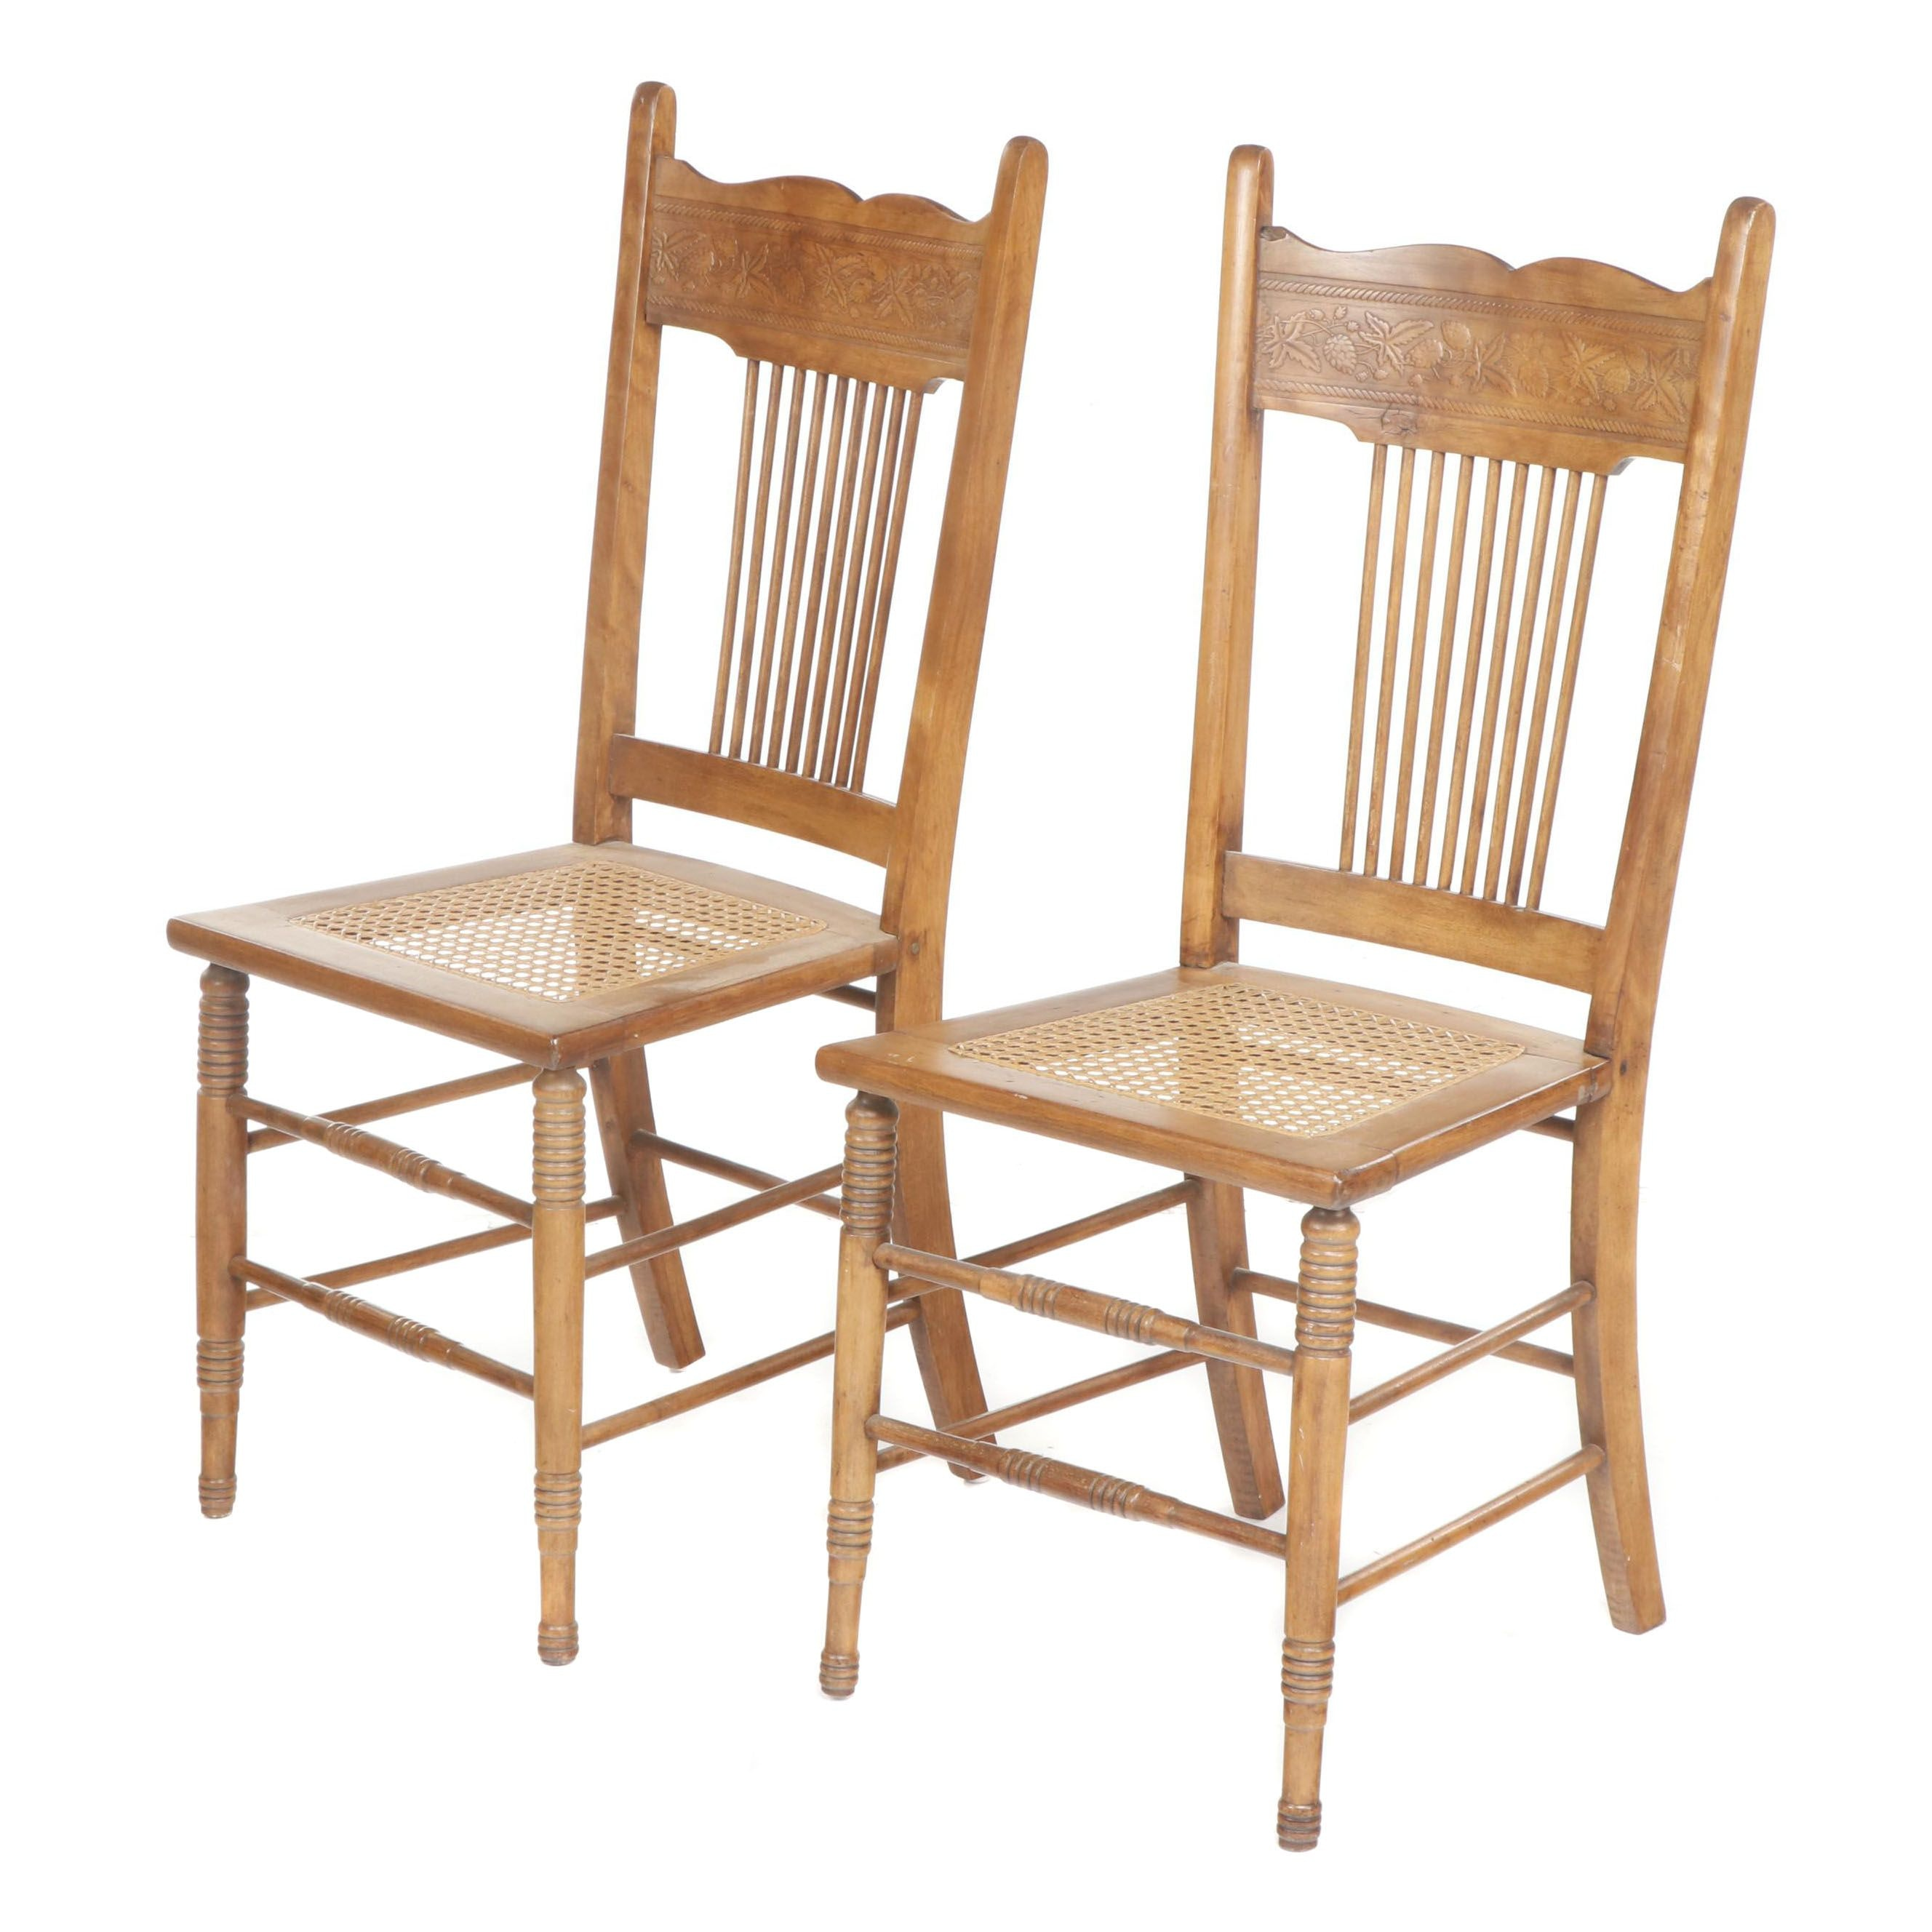 Pair of Late Victorian Press Back Wooden Side Chairs with Cane Seats